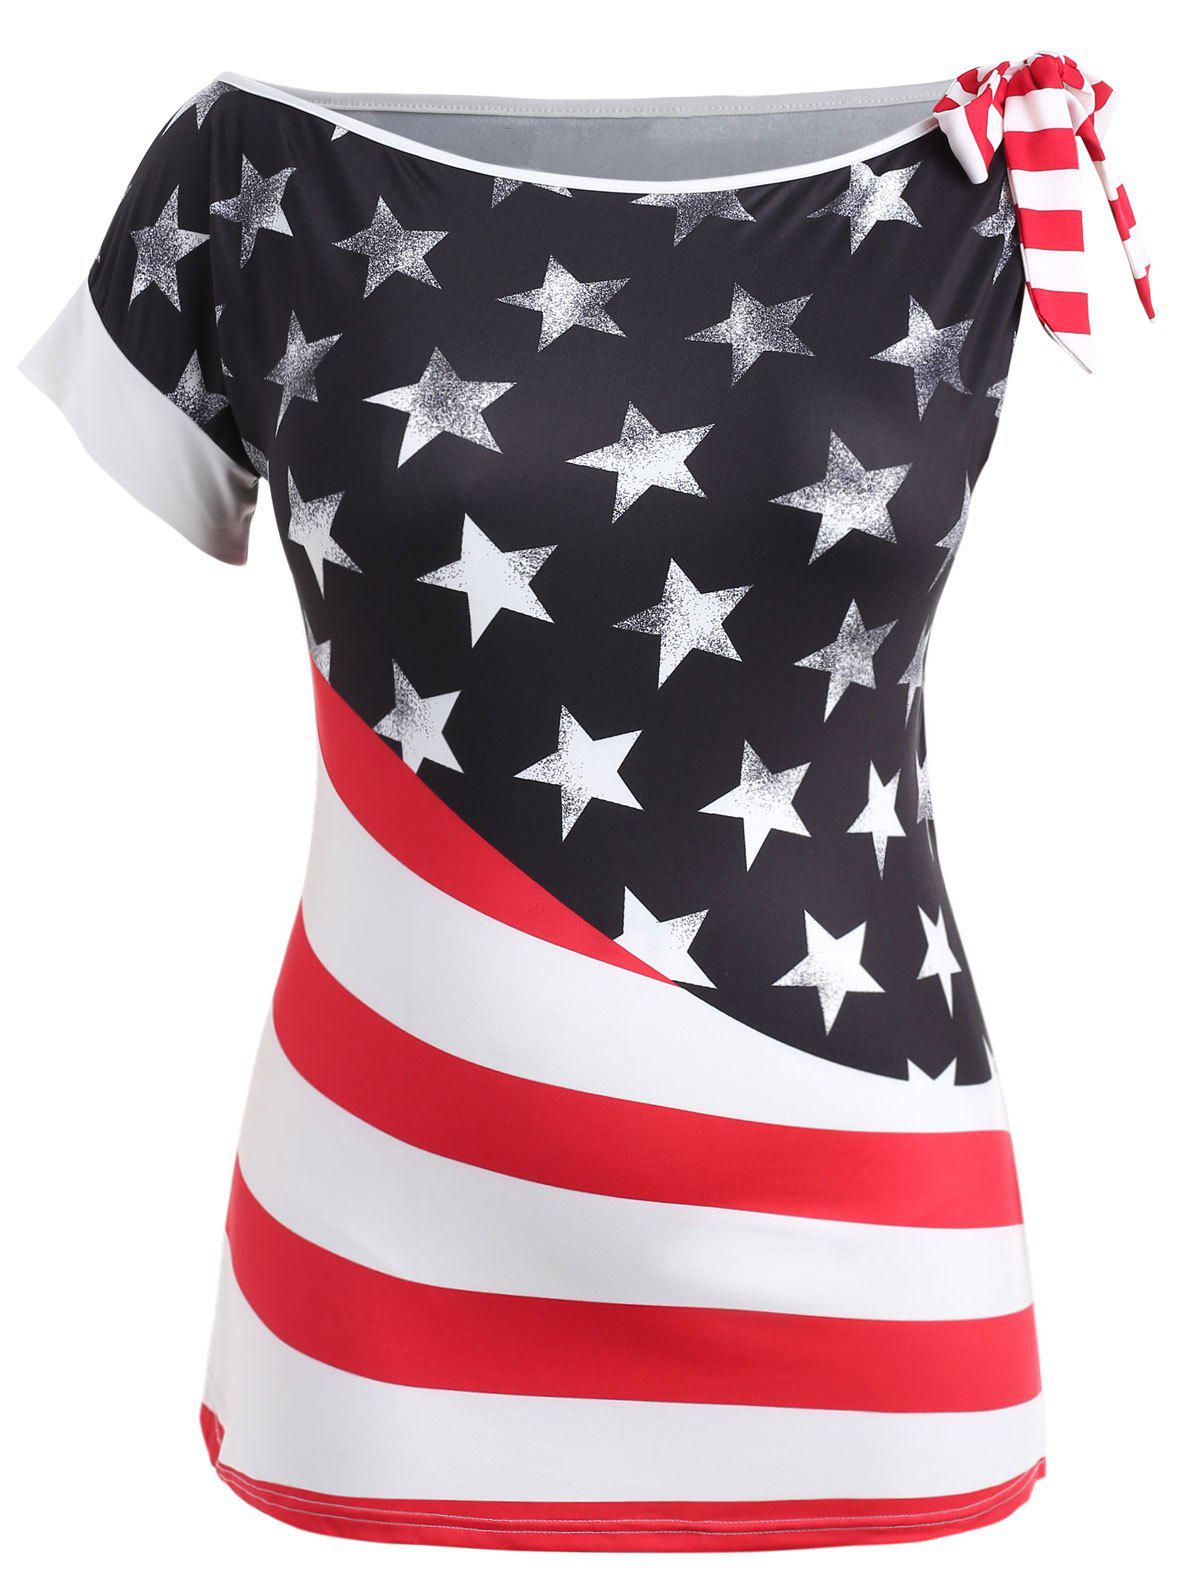 Plus Size Bowknot American Flag T-shirt - FIRE ENGINE RED 5X